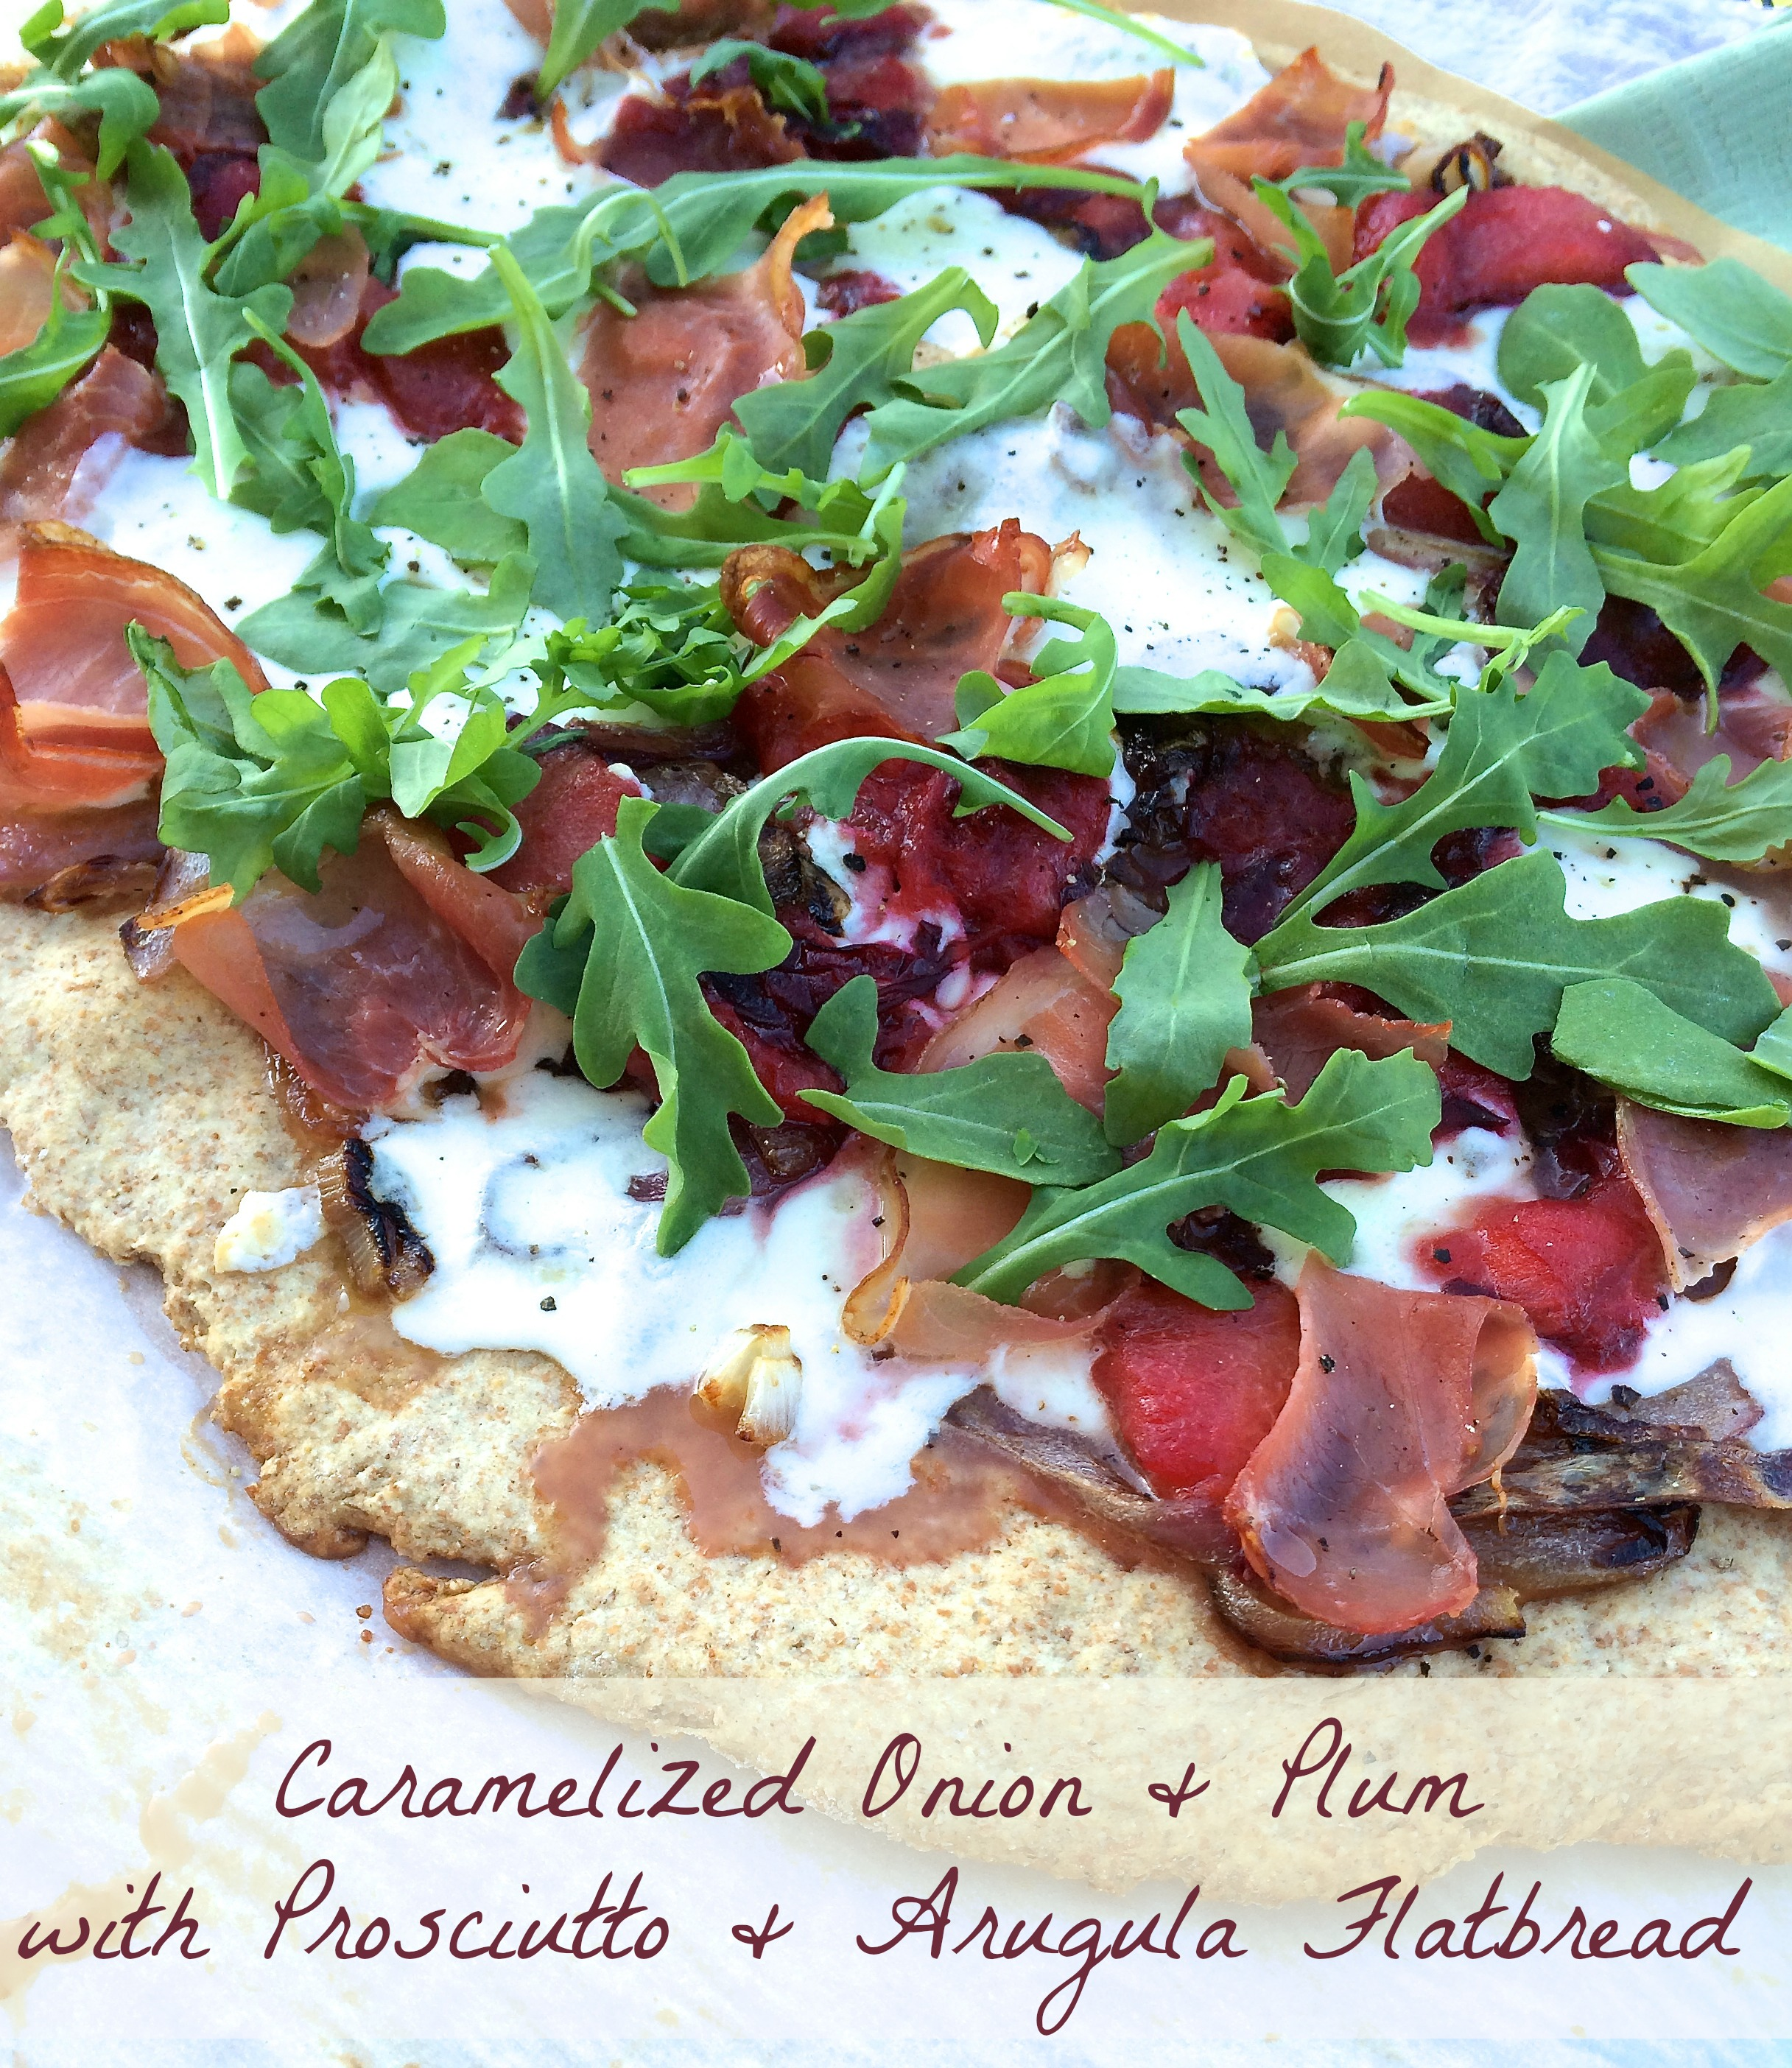 Caramelized Onion  Plum with Prosciutto  Arugula Flatbread RD